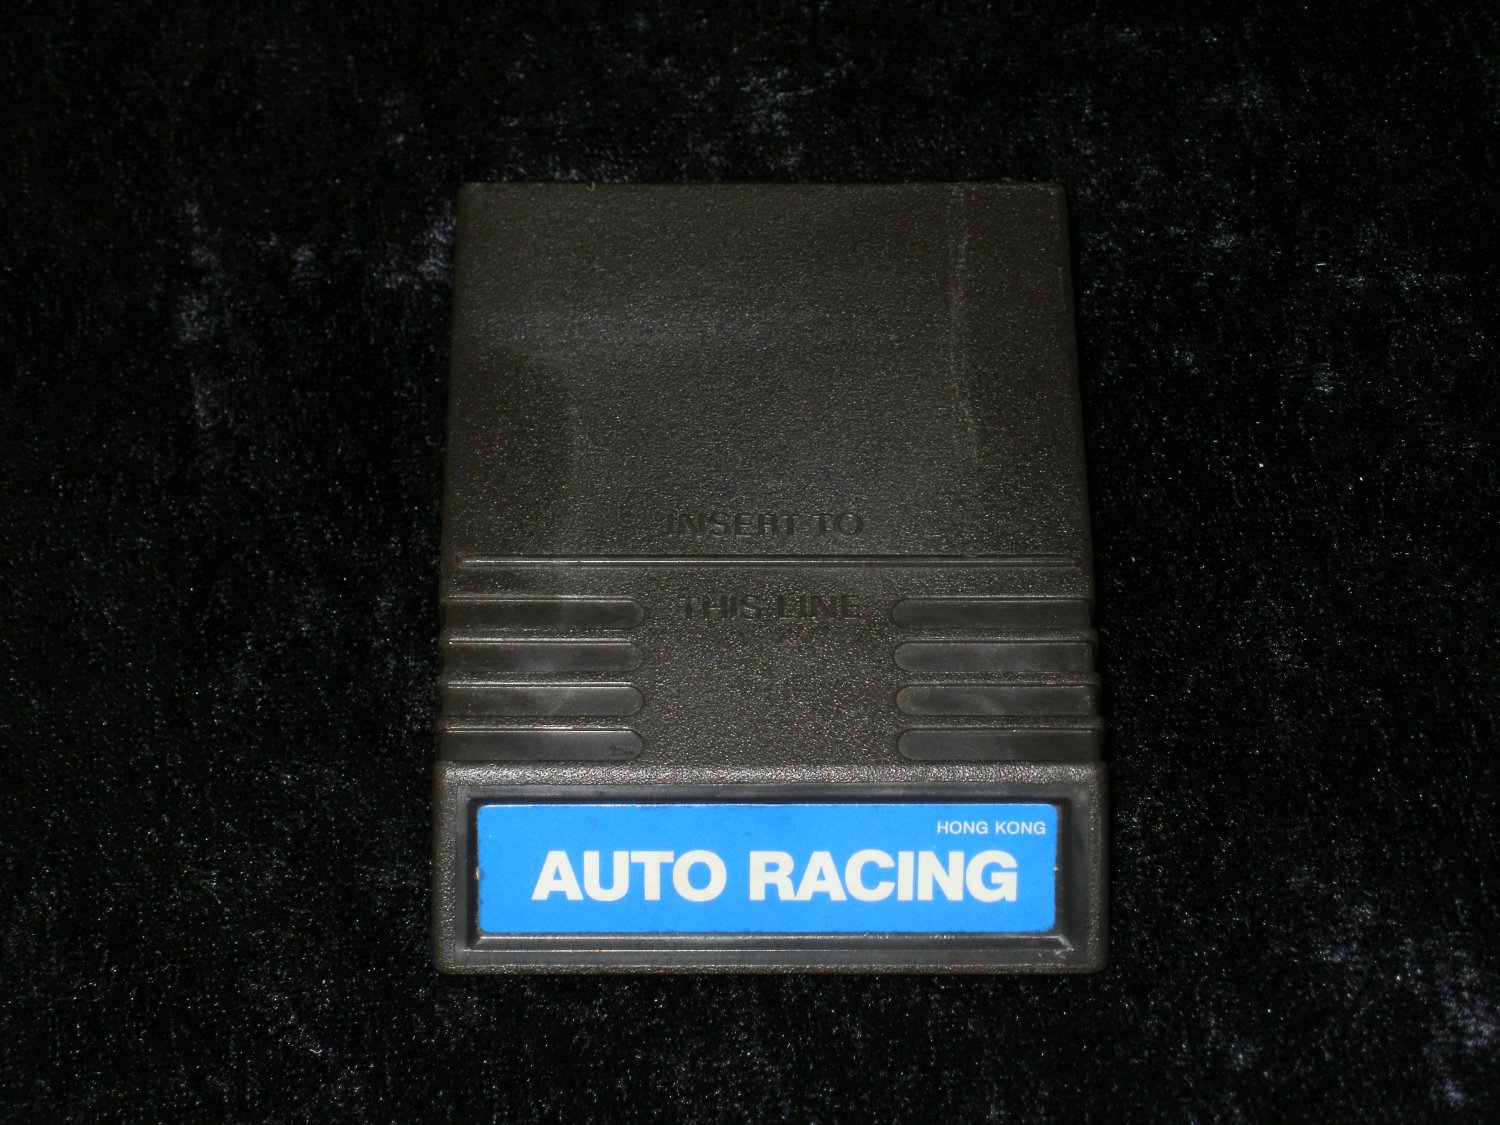 Auto Racing - Mattel Intellivision